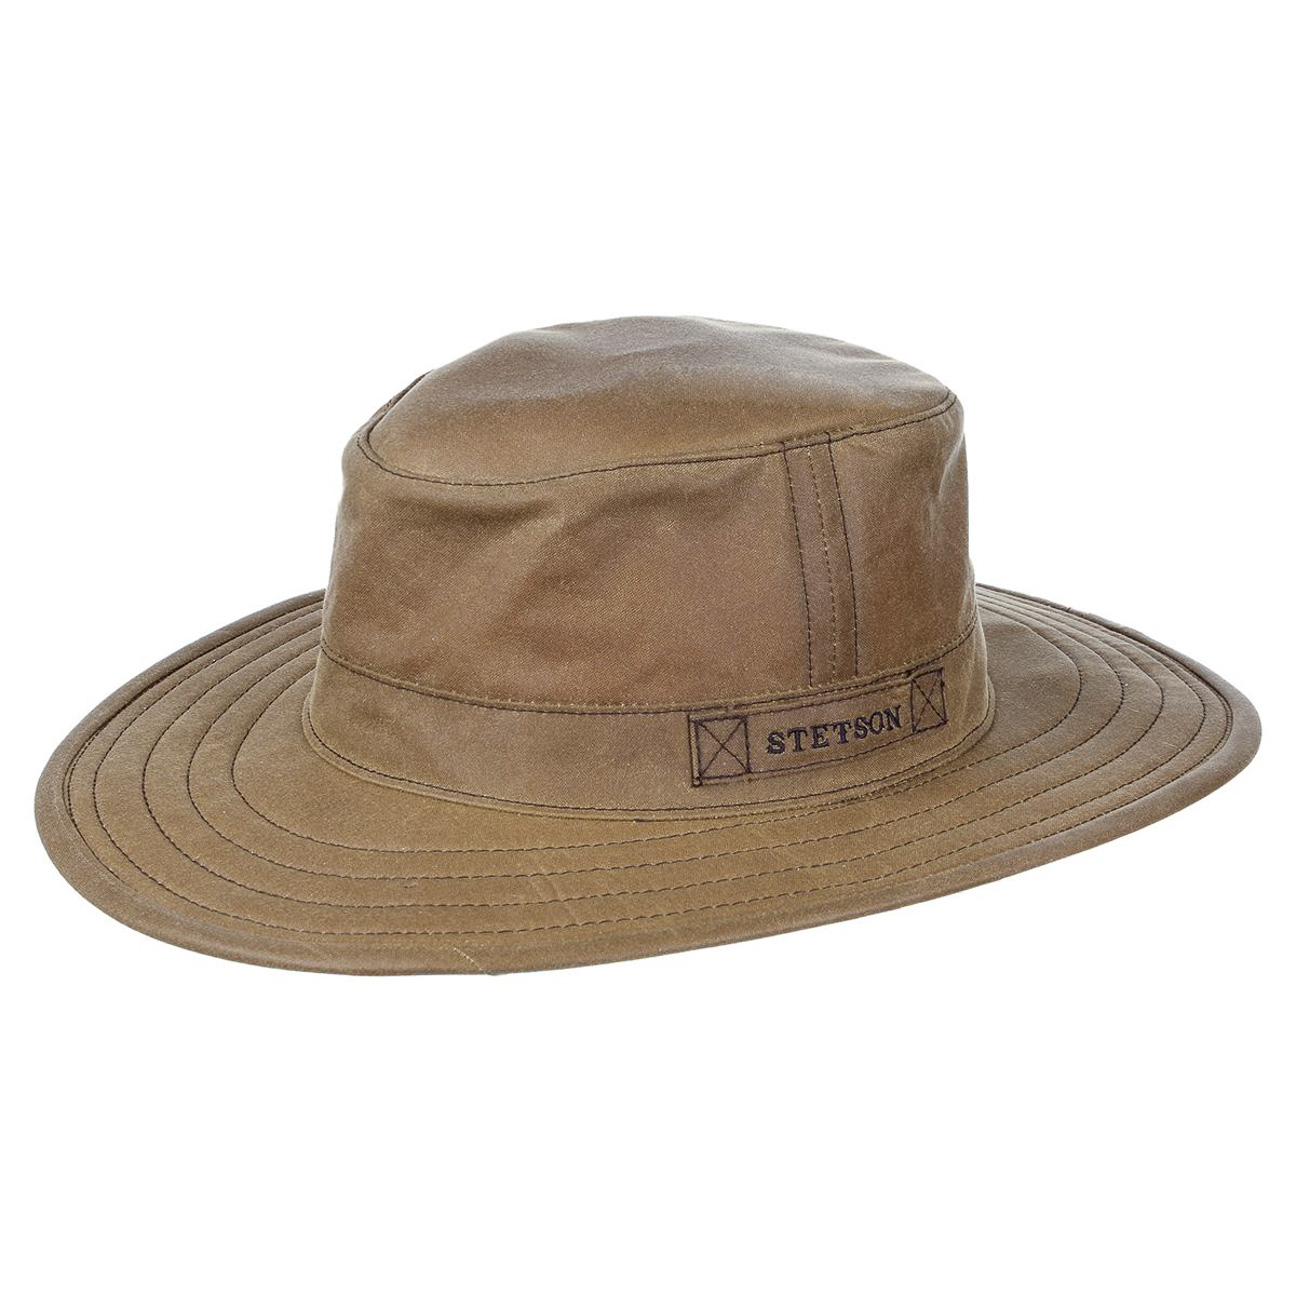 Chapeau STETSON Pompano Waxed Cotton marron clair